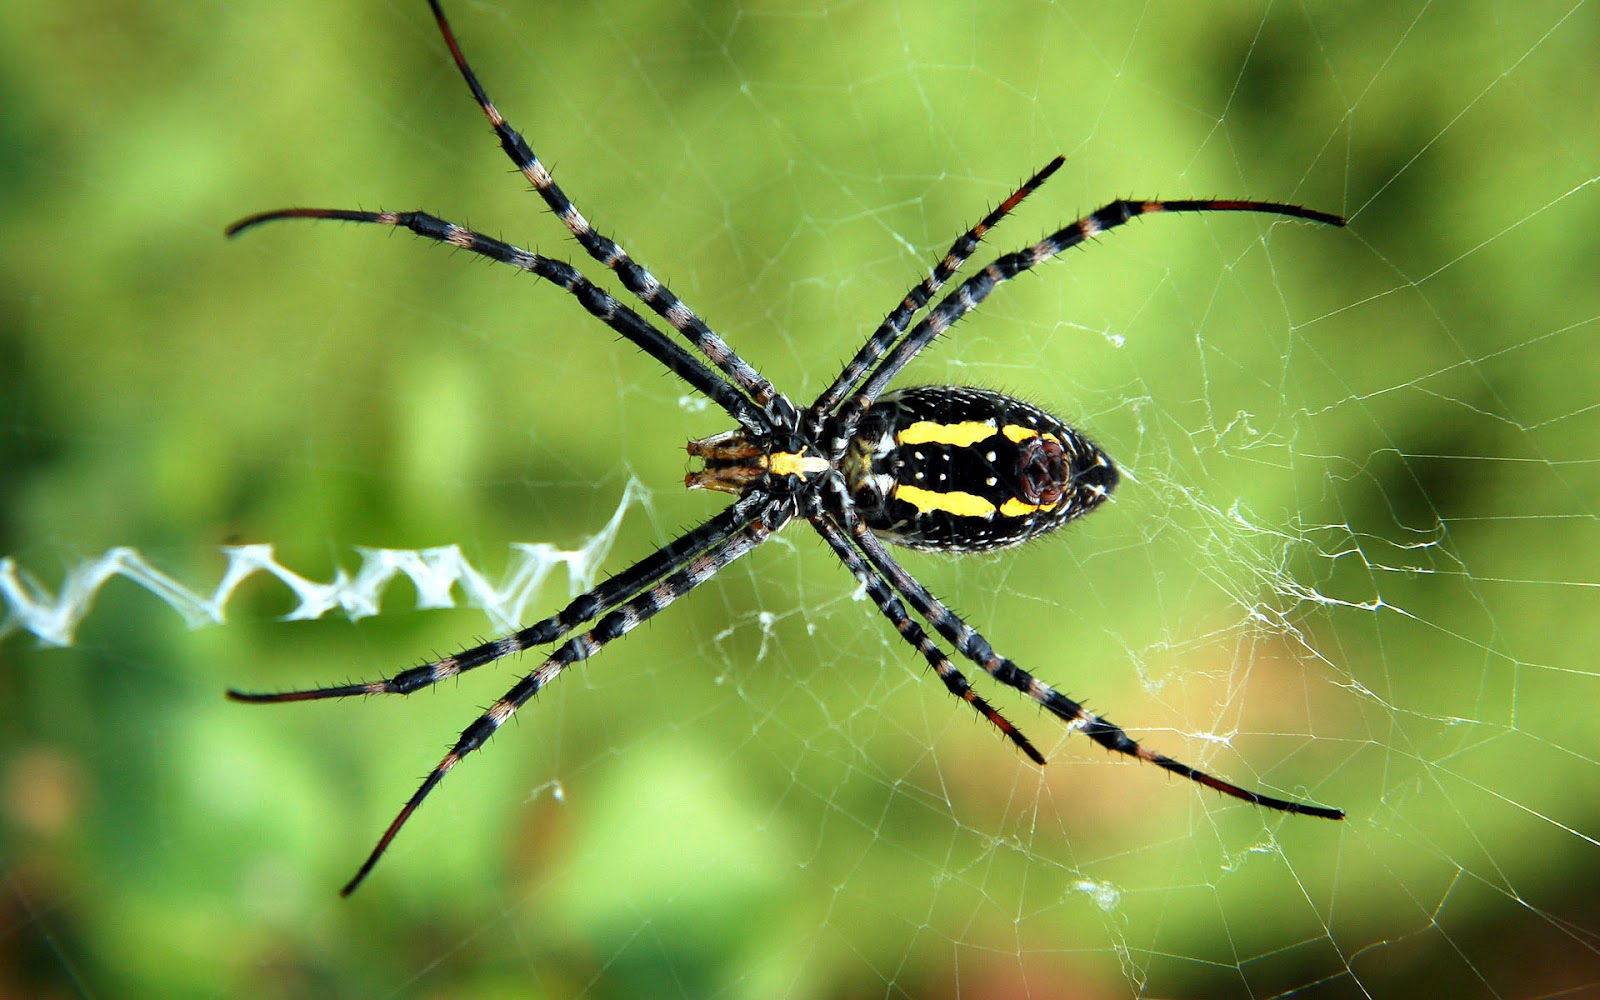 hd spider wallpaper with a spider in the web hd spiders wallpapers 1600x1000